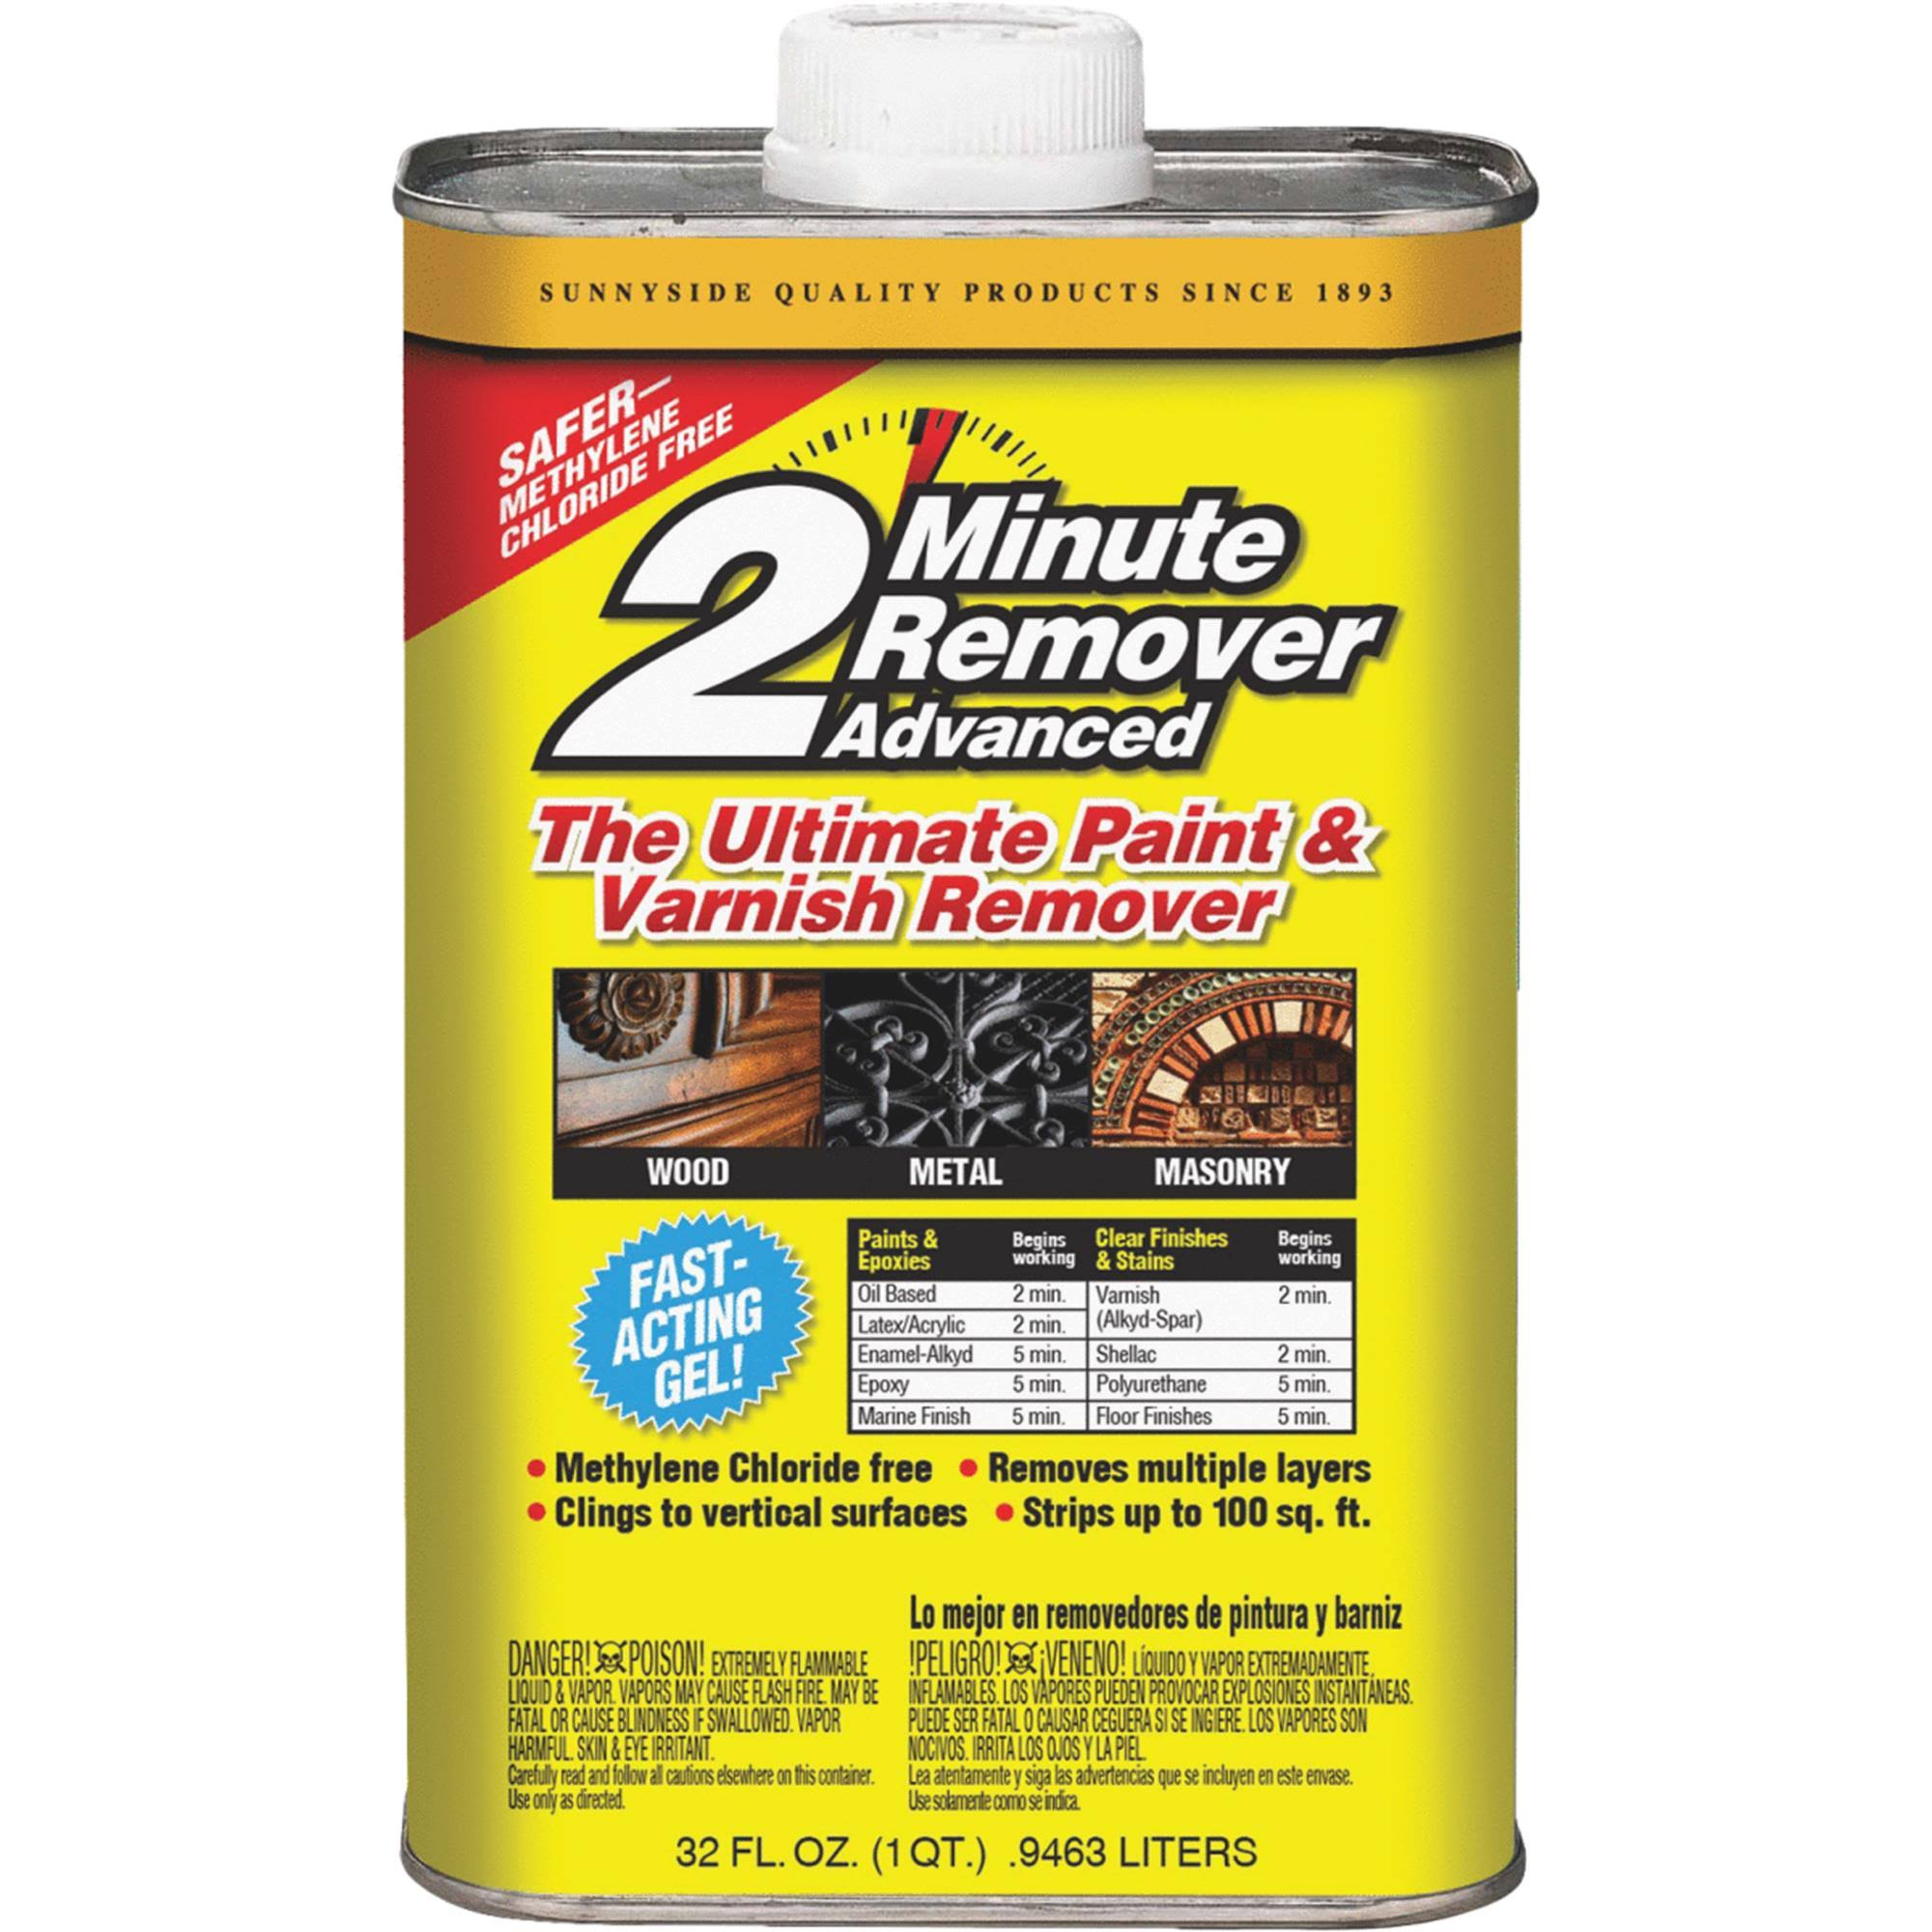 Sunnyside 2 Minute Remover Advanced Paint & Varnish Stripper 63432